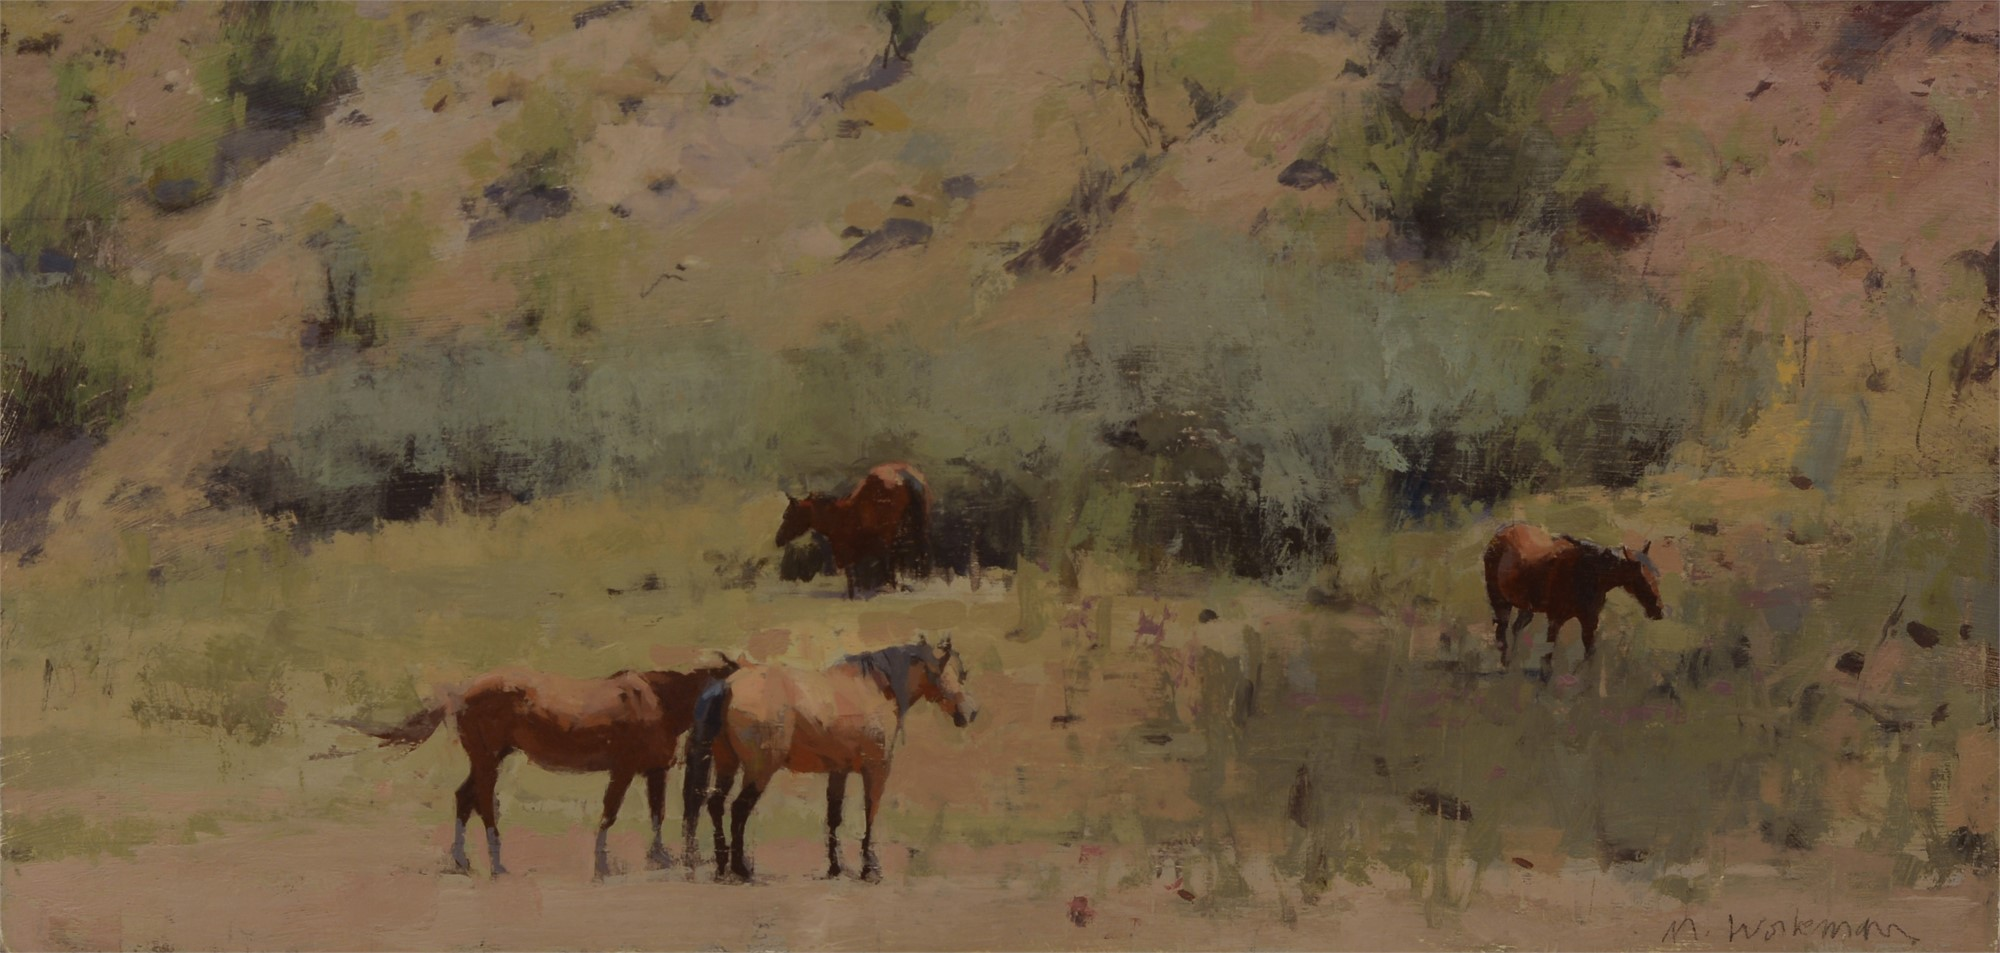 Four Summer Horses by Michael Workman